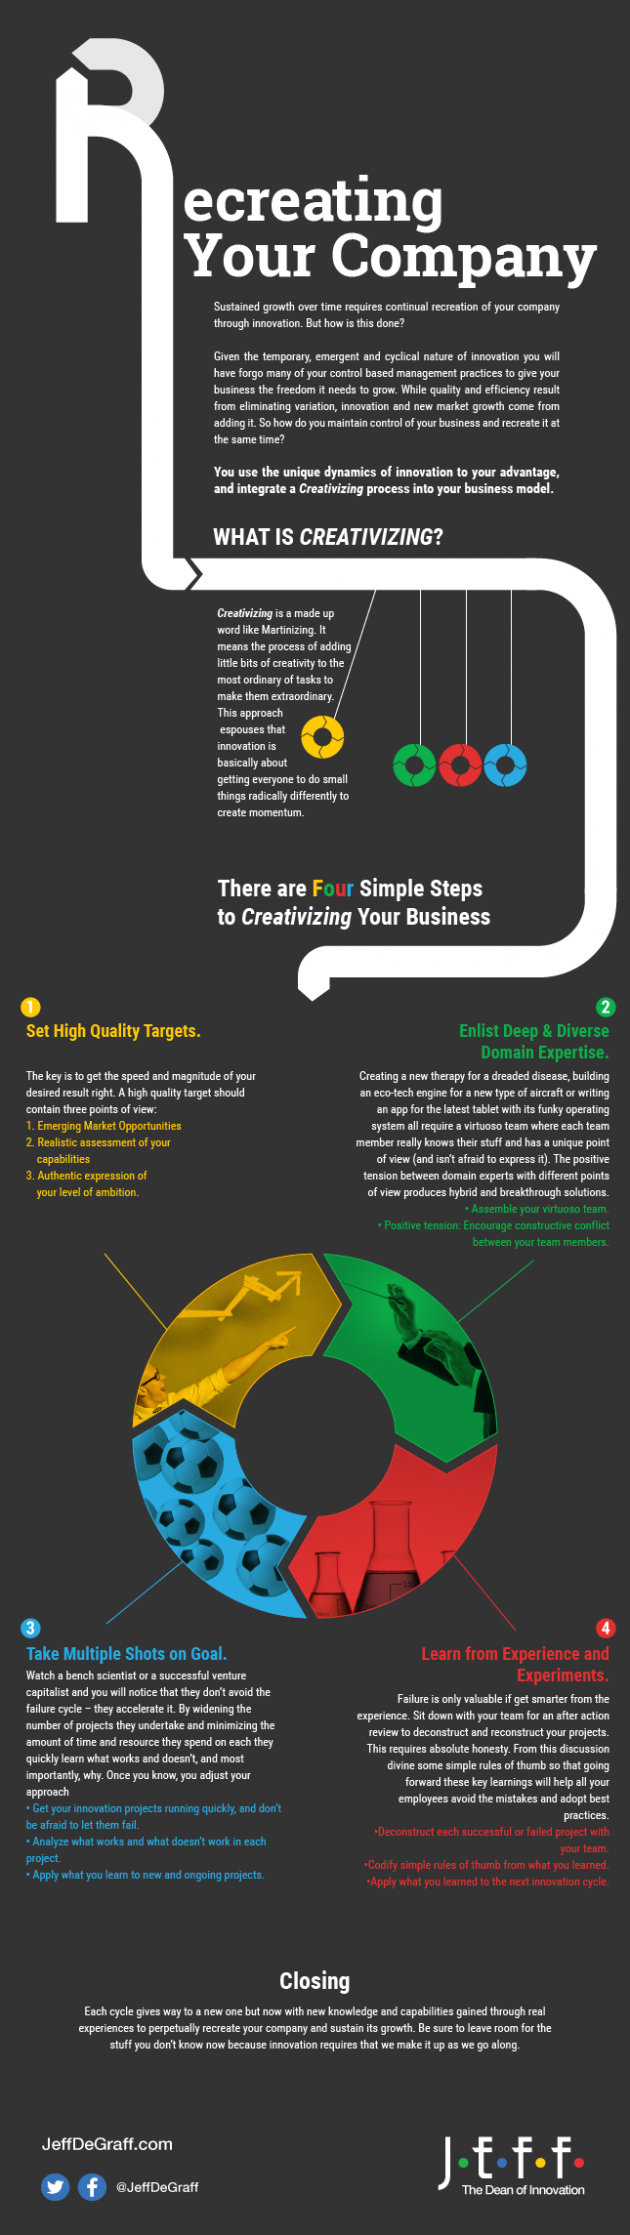 How to Reinvent Your Company [Infographic] | Credits: Jeff DeGraff